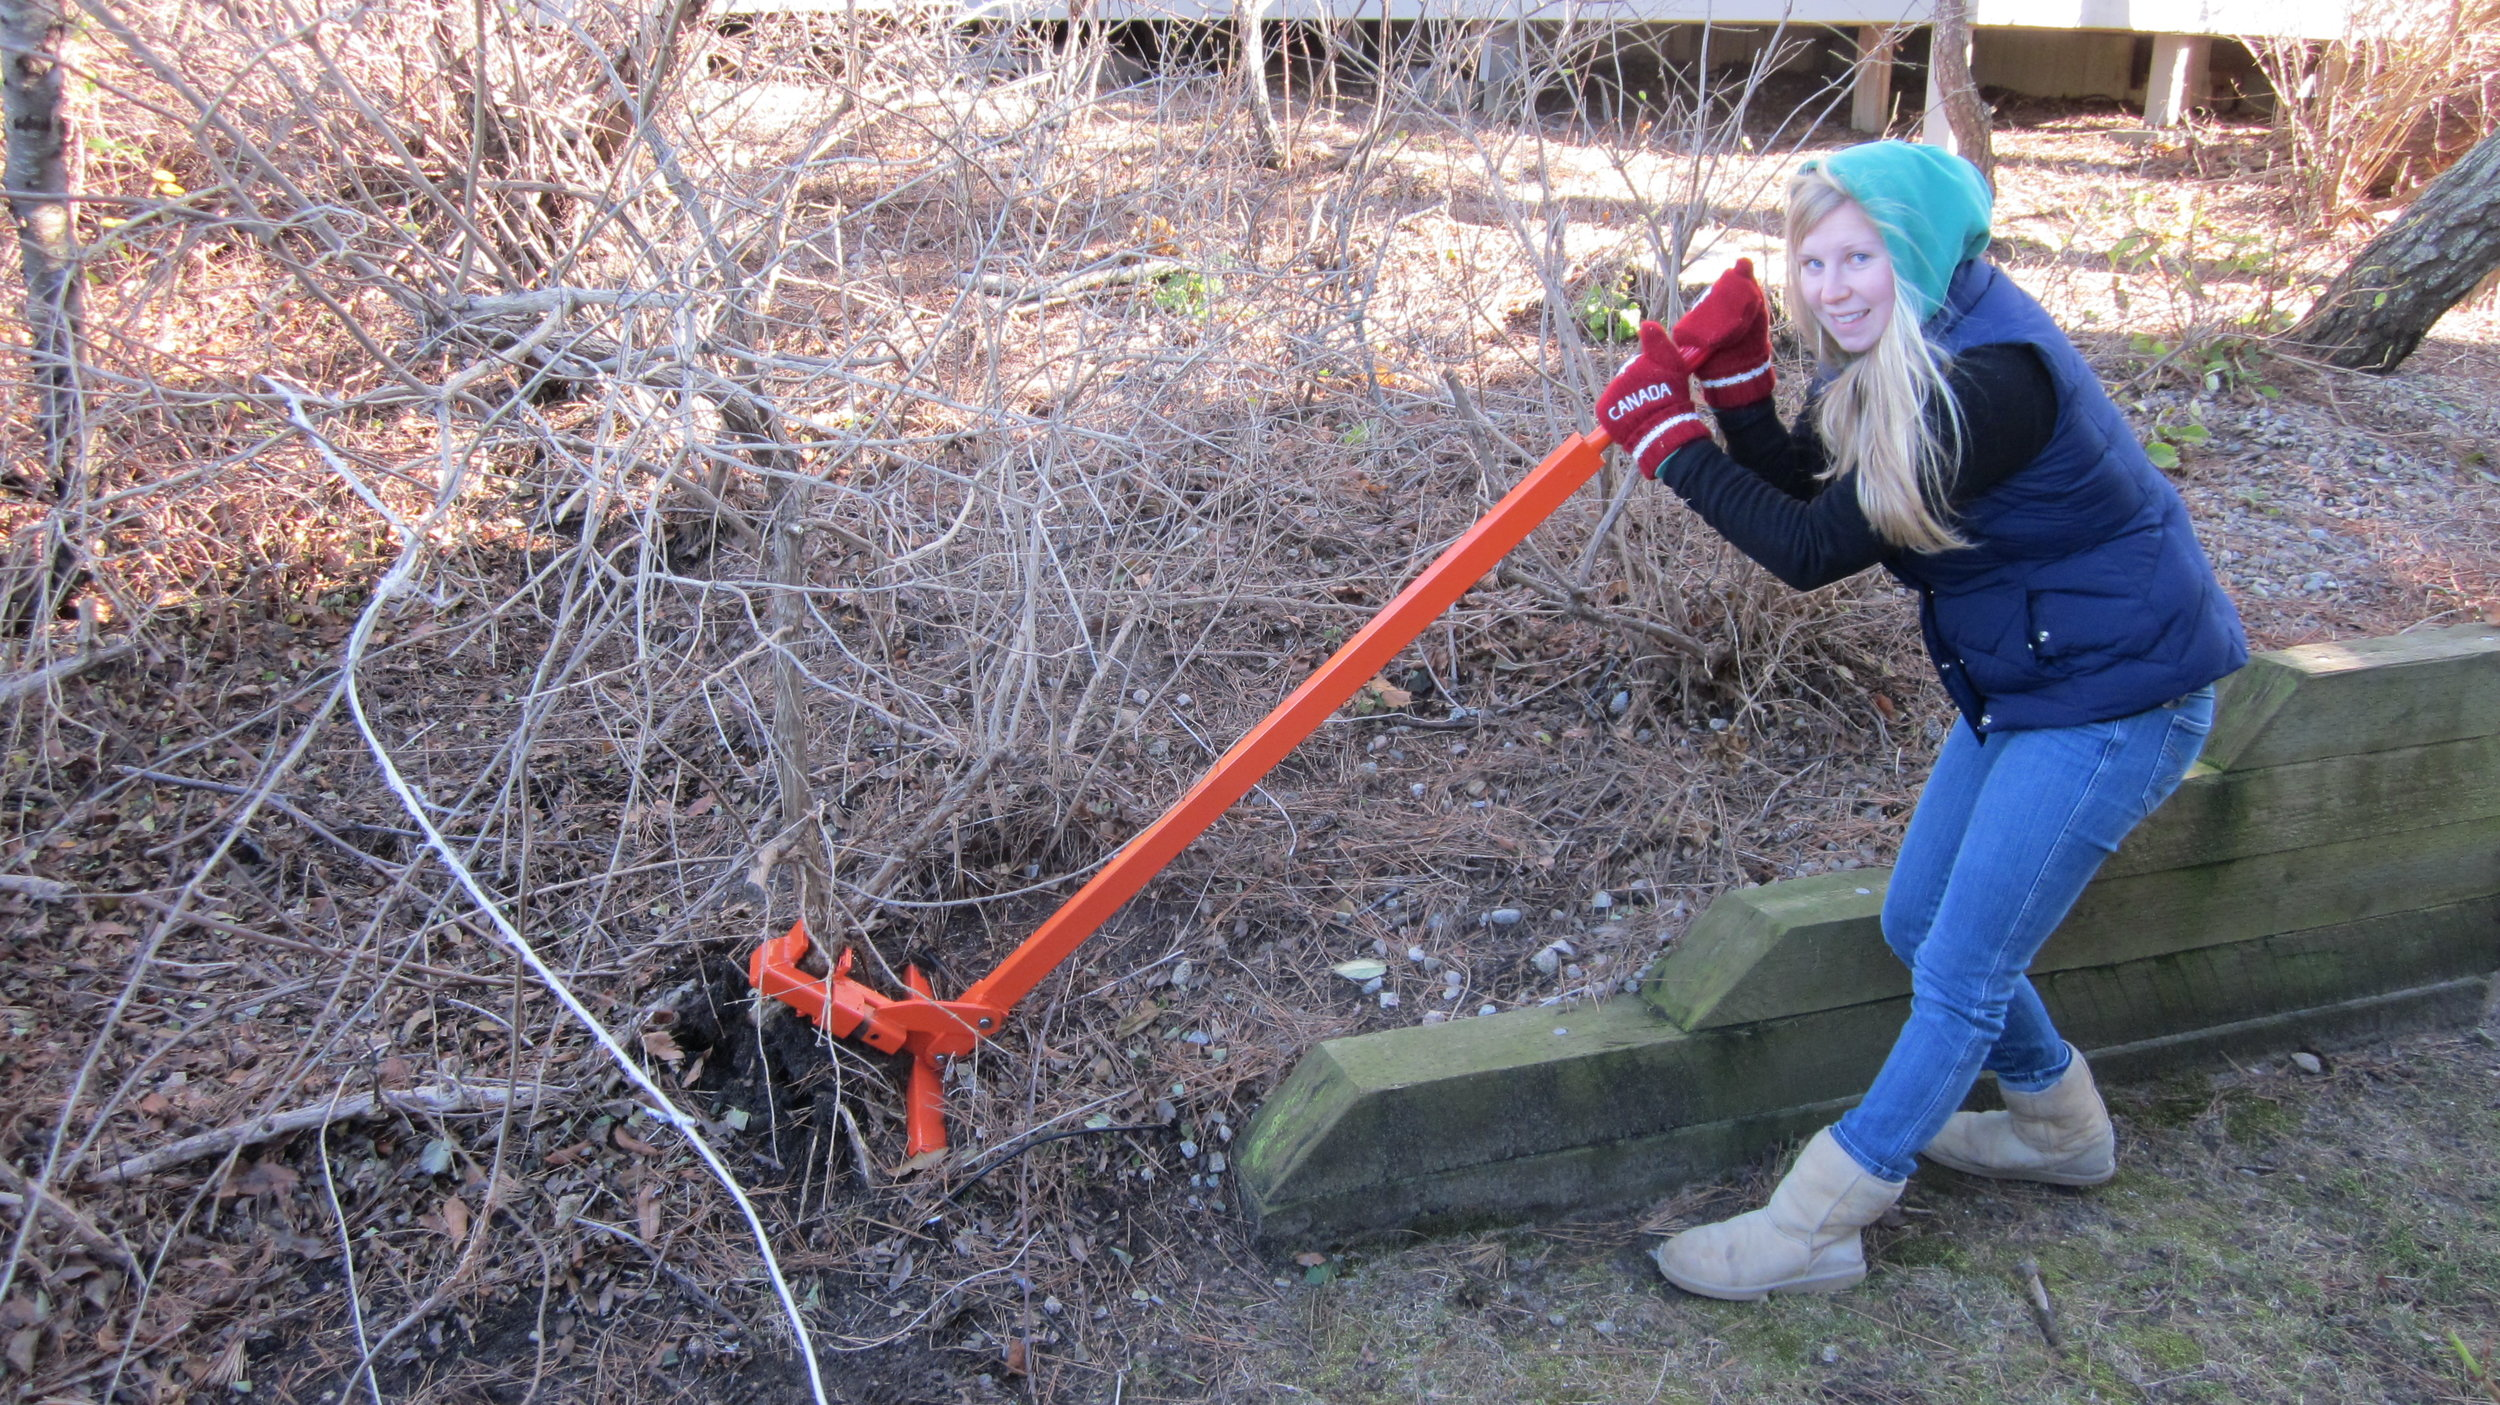 Safe Harbor  field team  member, Audra works with a 'Weed Wrench' to remove invasive vegetation.